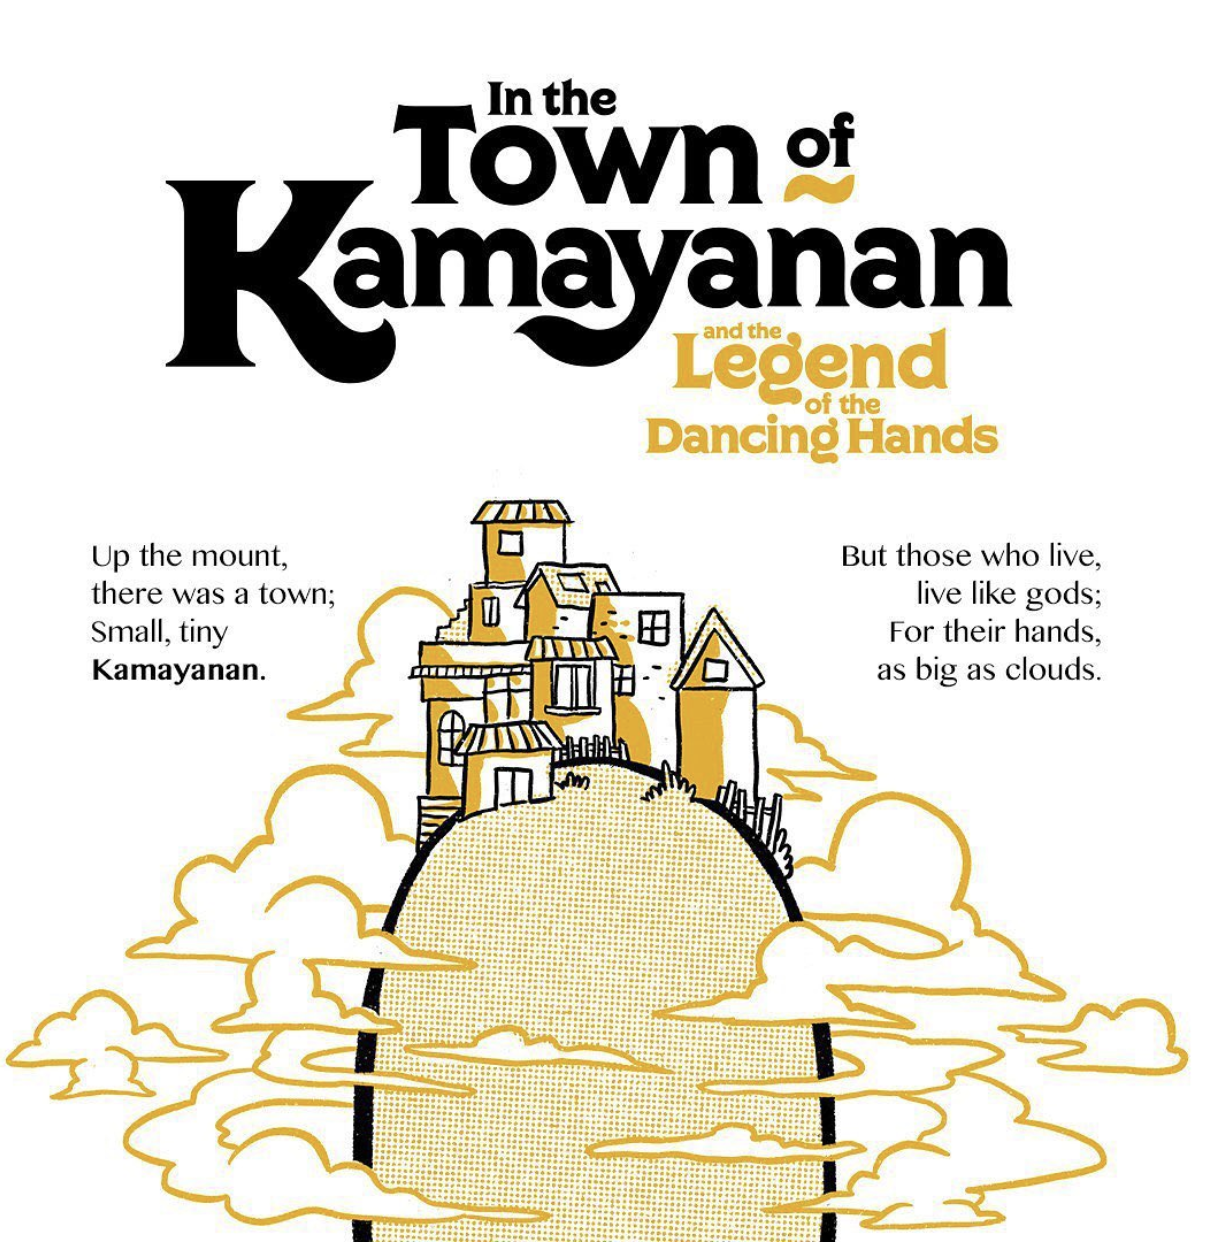 In The Town Of Kamayanan and the Legend of the Dancing Hands